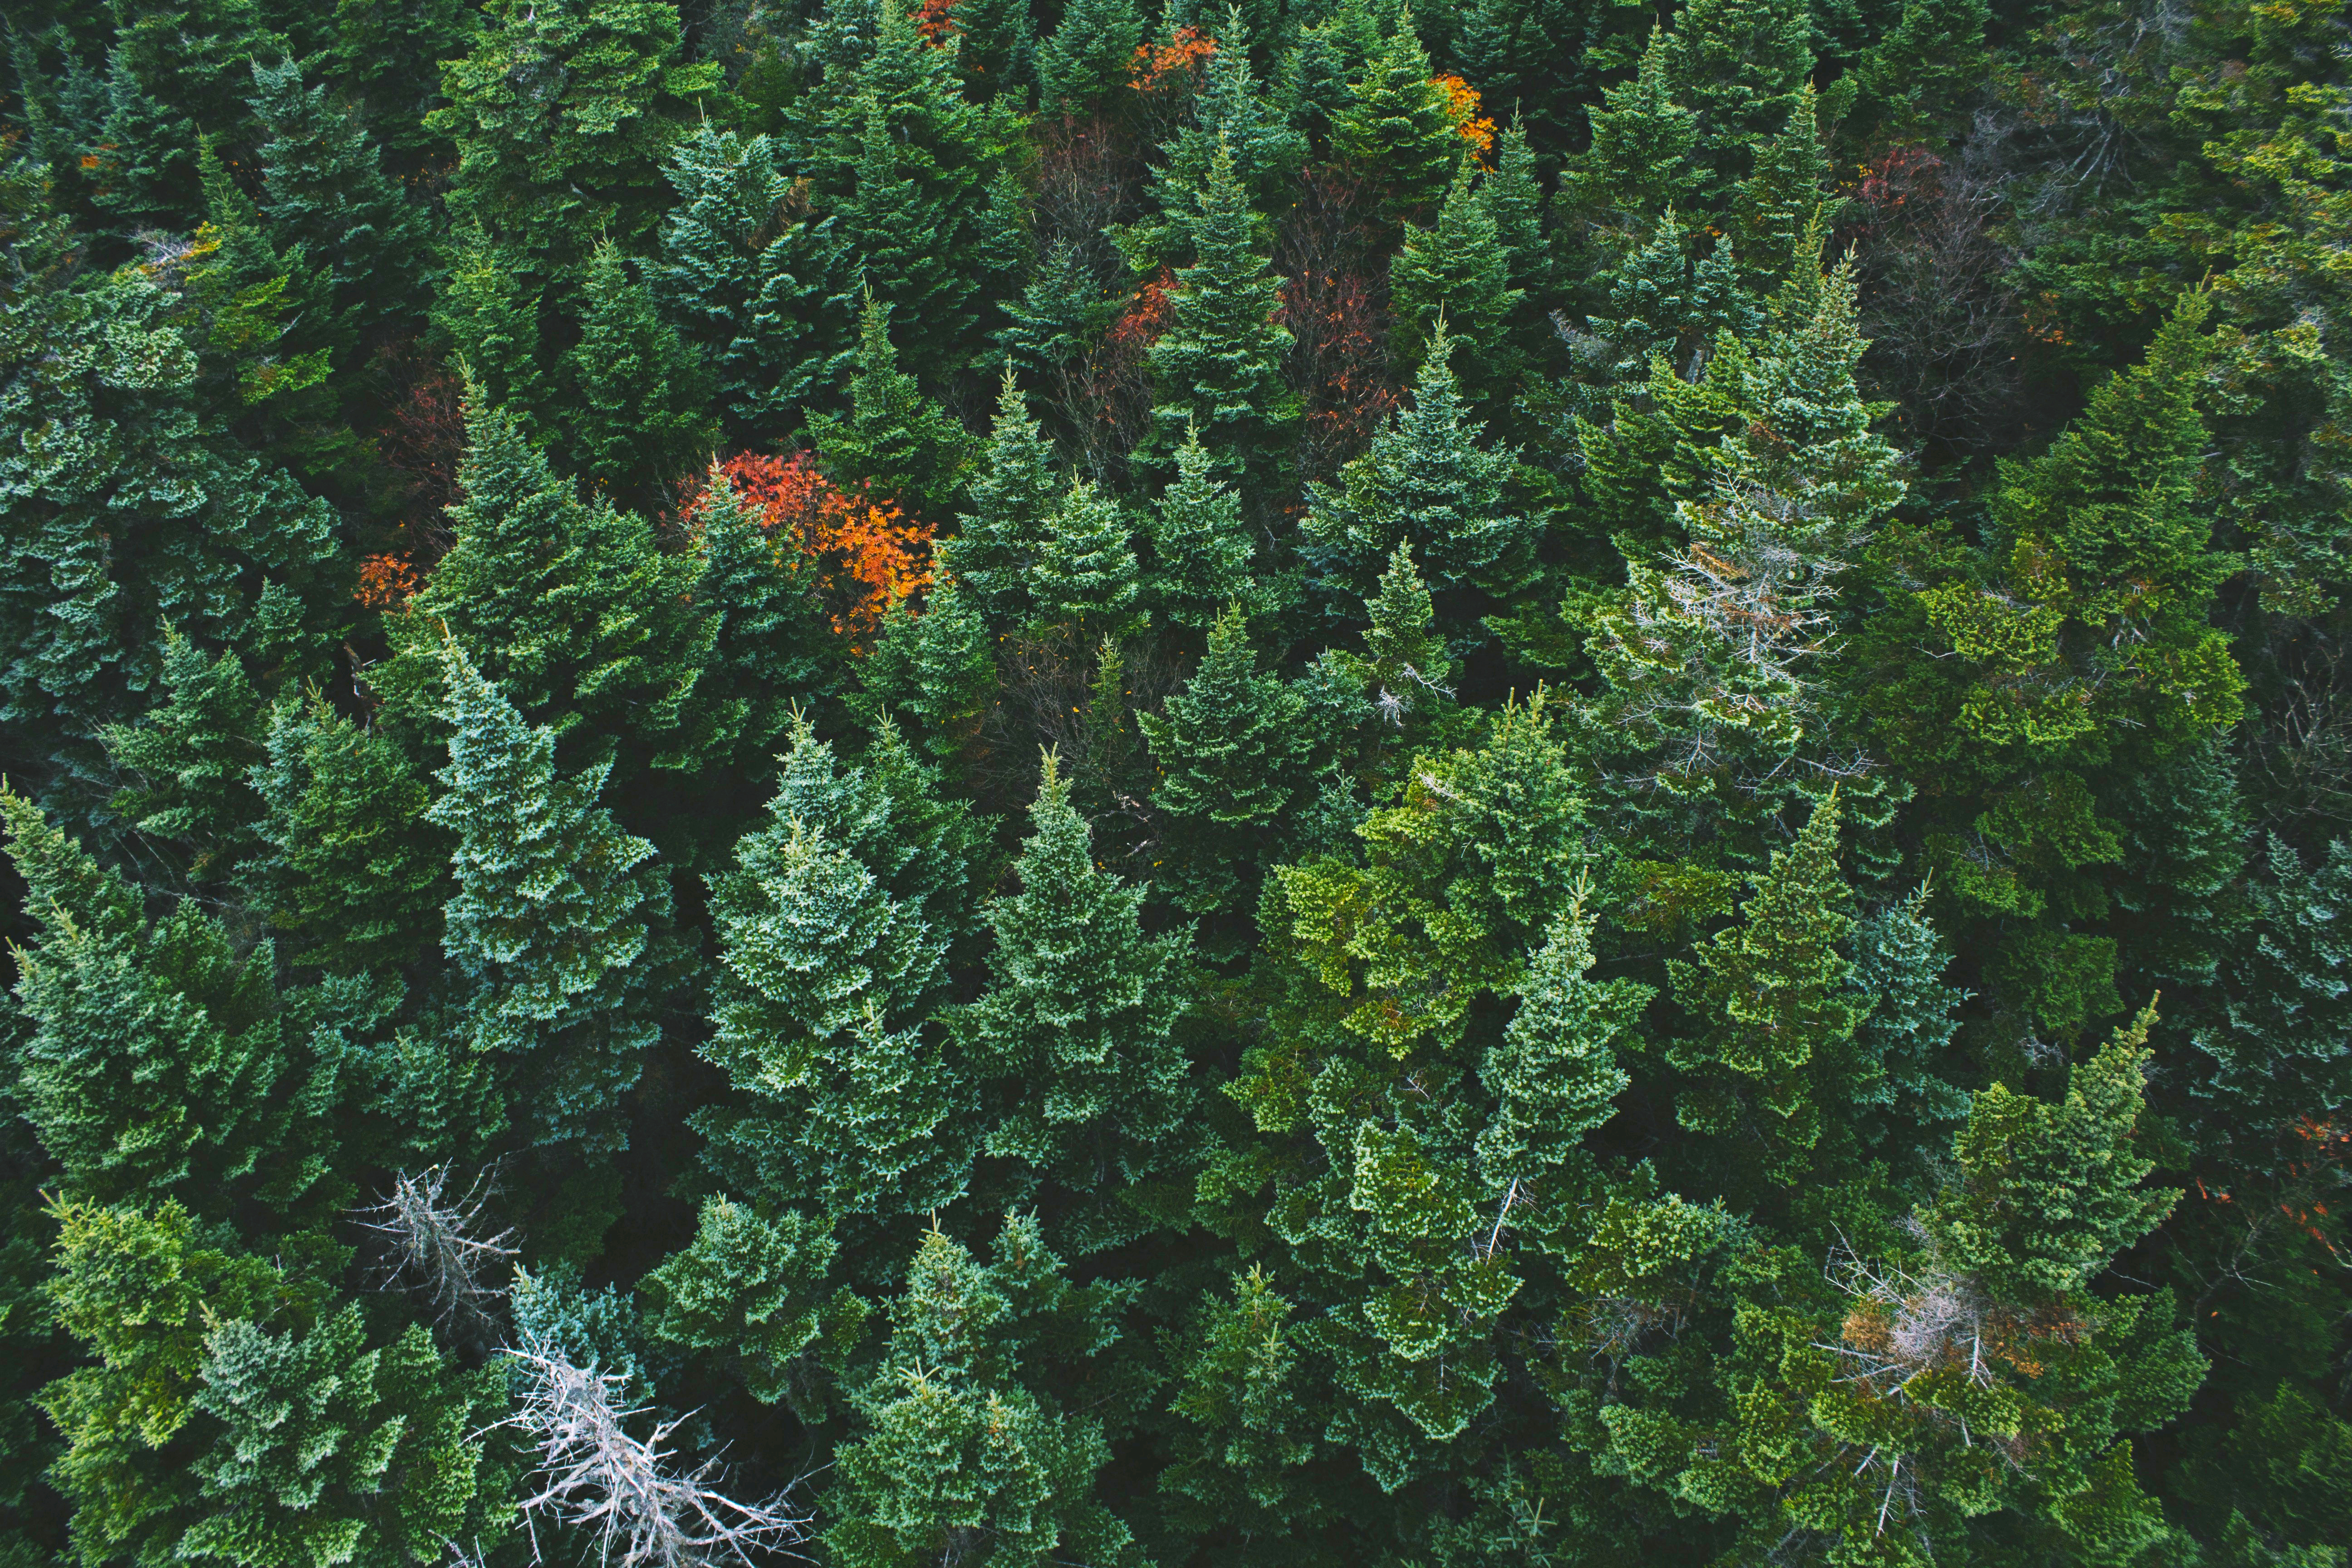 Green forest from above. Photo.